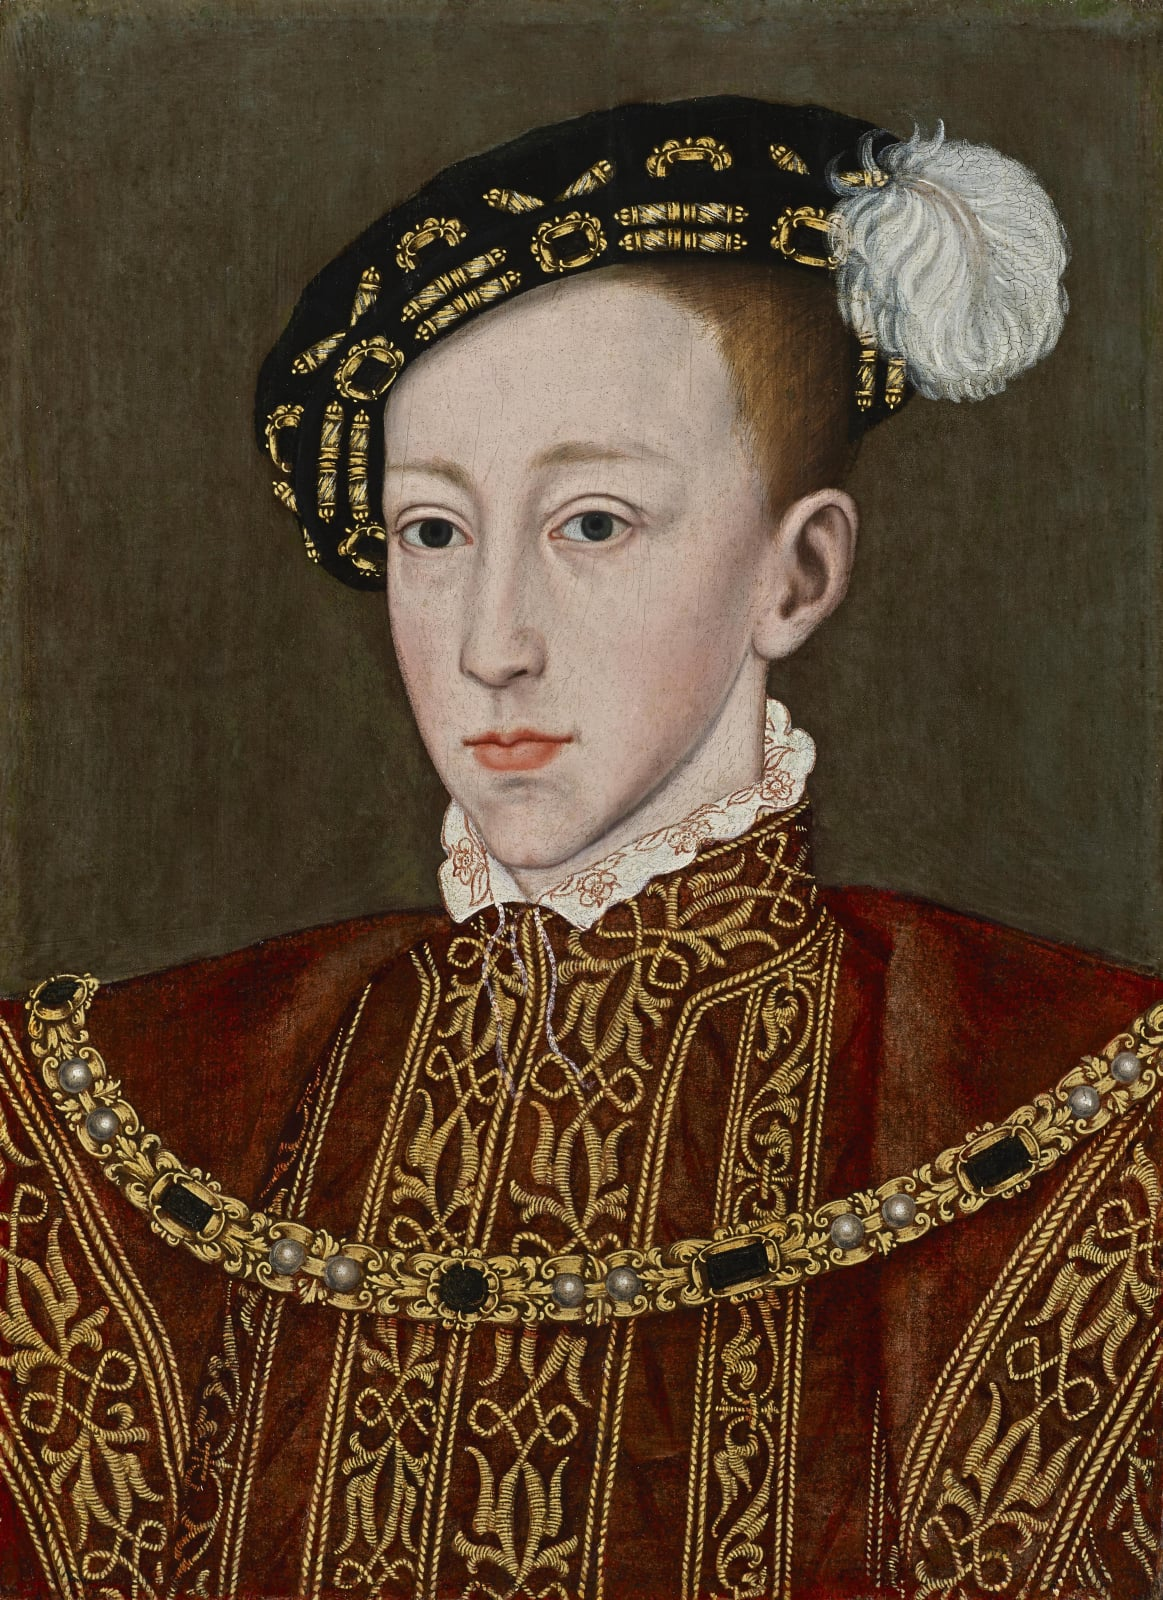 Edward VI of England (1531 – 1553)